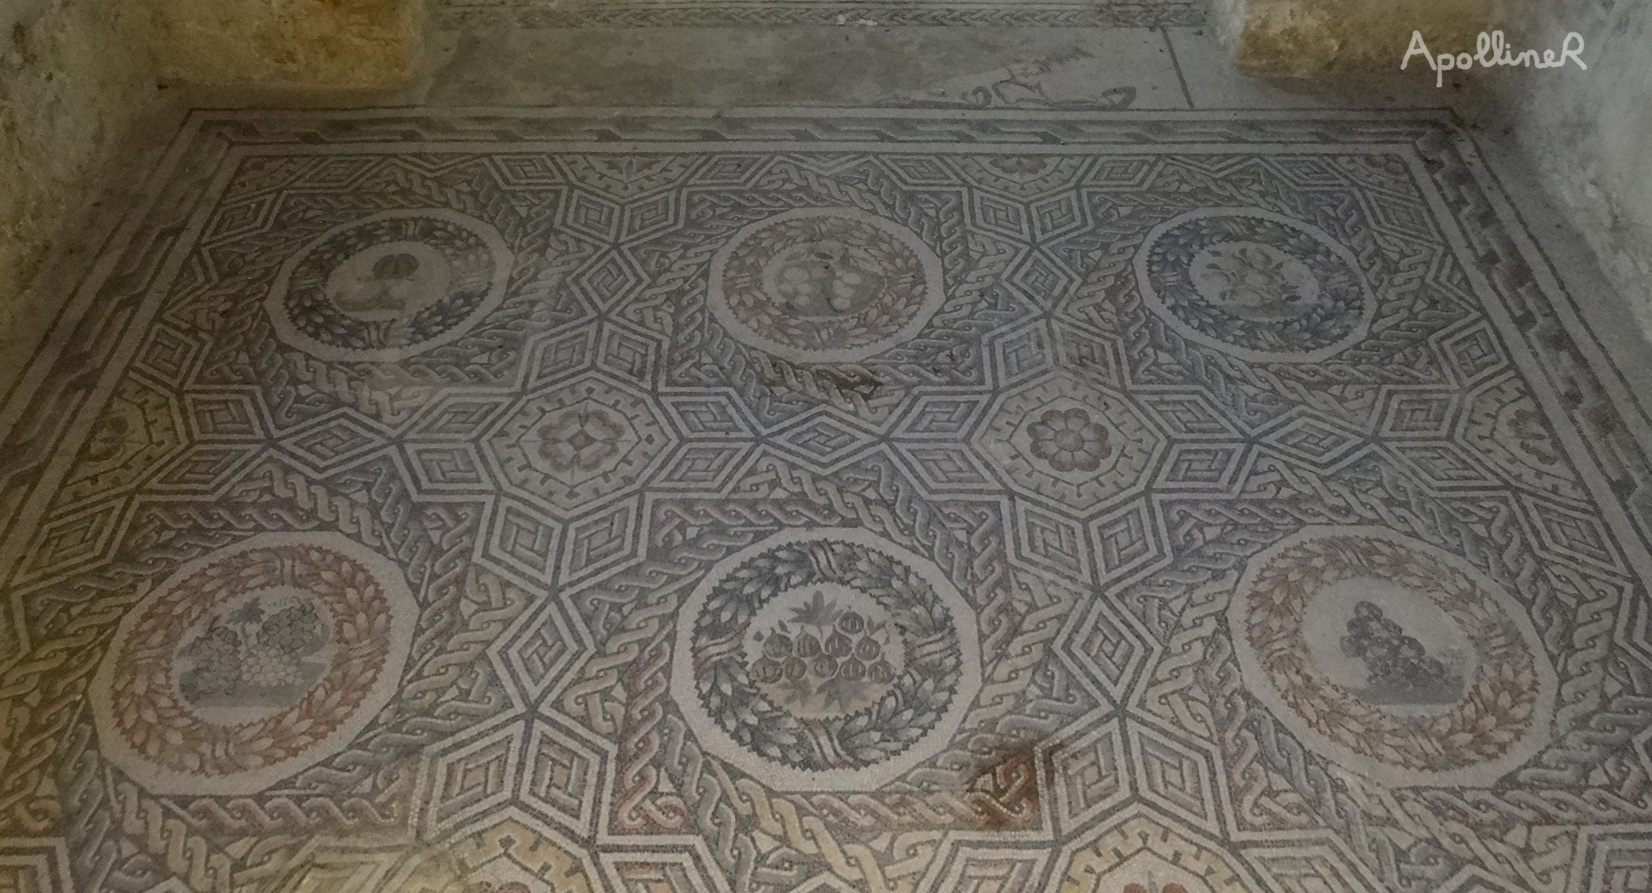 Roman mosaic combining geometrical patterns and medallions featuring fruits. Villa Romana Del Casale in Sicily